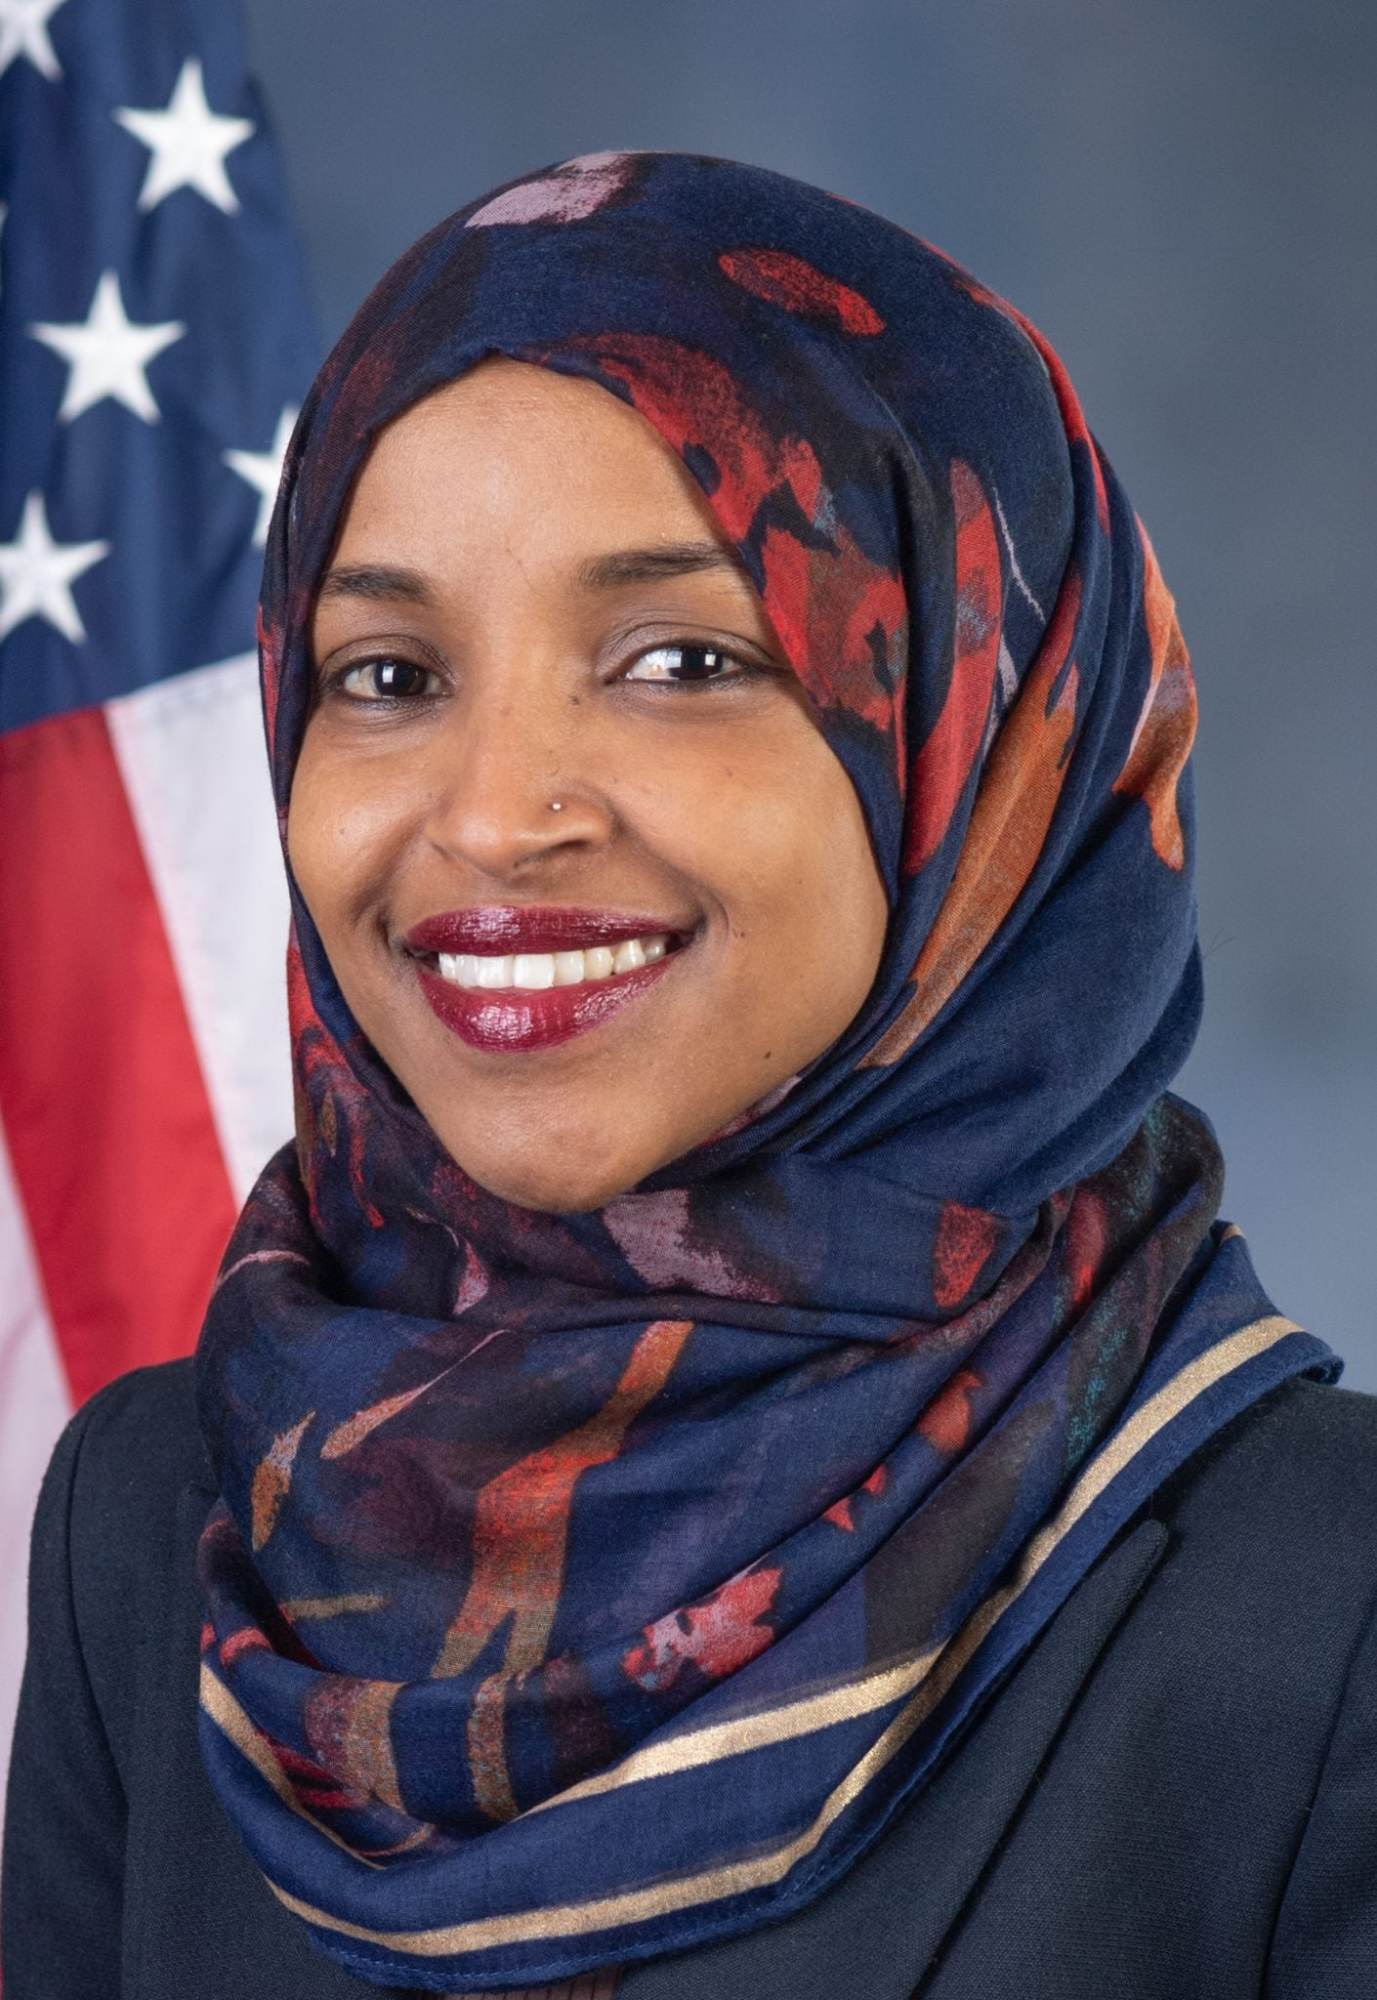 Ilhan Omar Has a Legitimate Point 'Muslims Are Unfairly Demonized' After 9/11